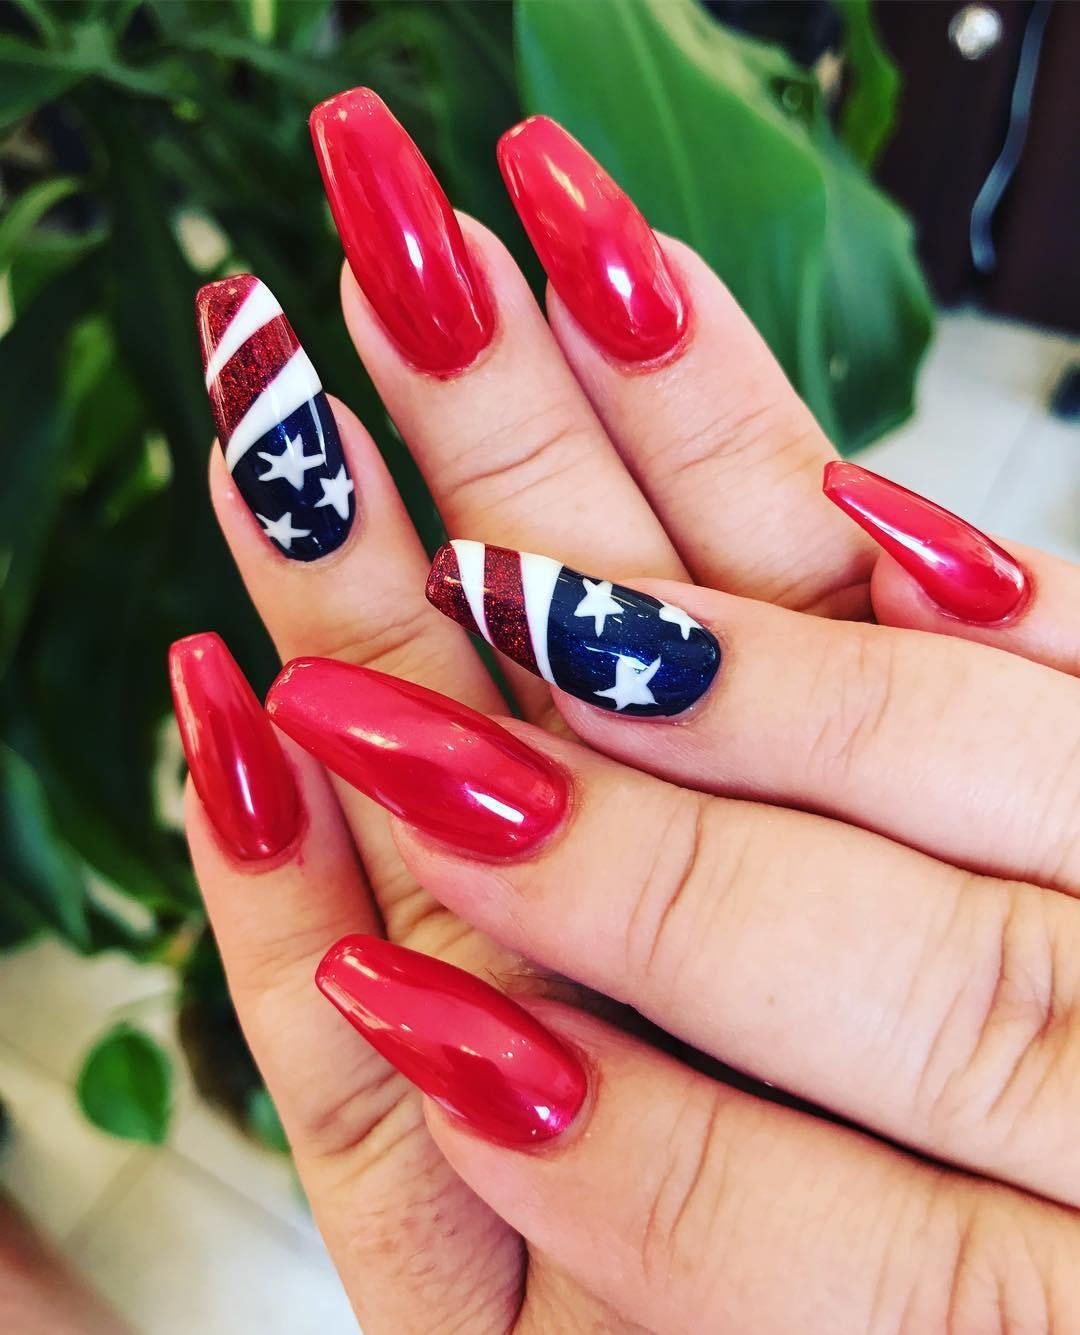 25 Nail Art Ideas For The 4th Of July 4th Of July Nails Fourth Of July Nails Acylic Nails